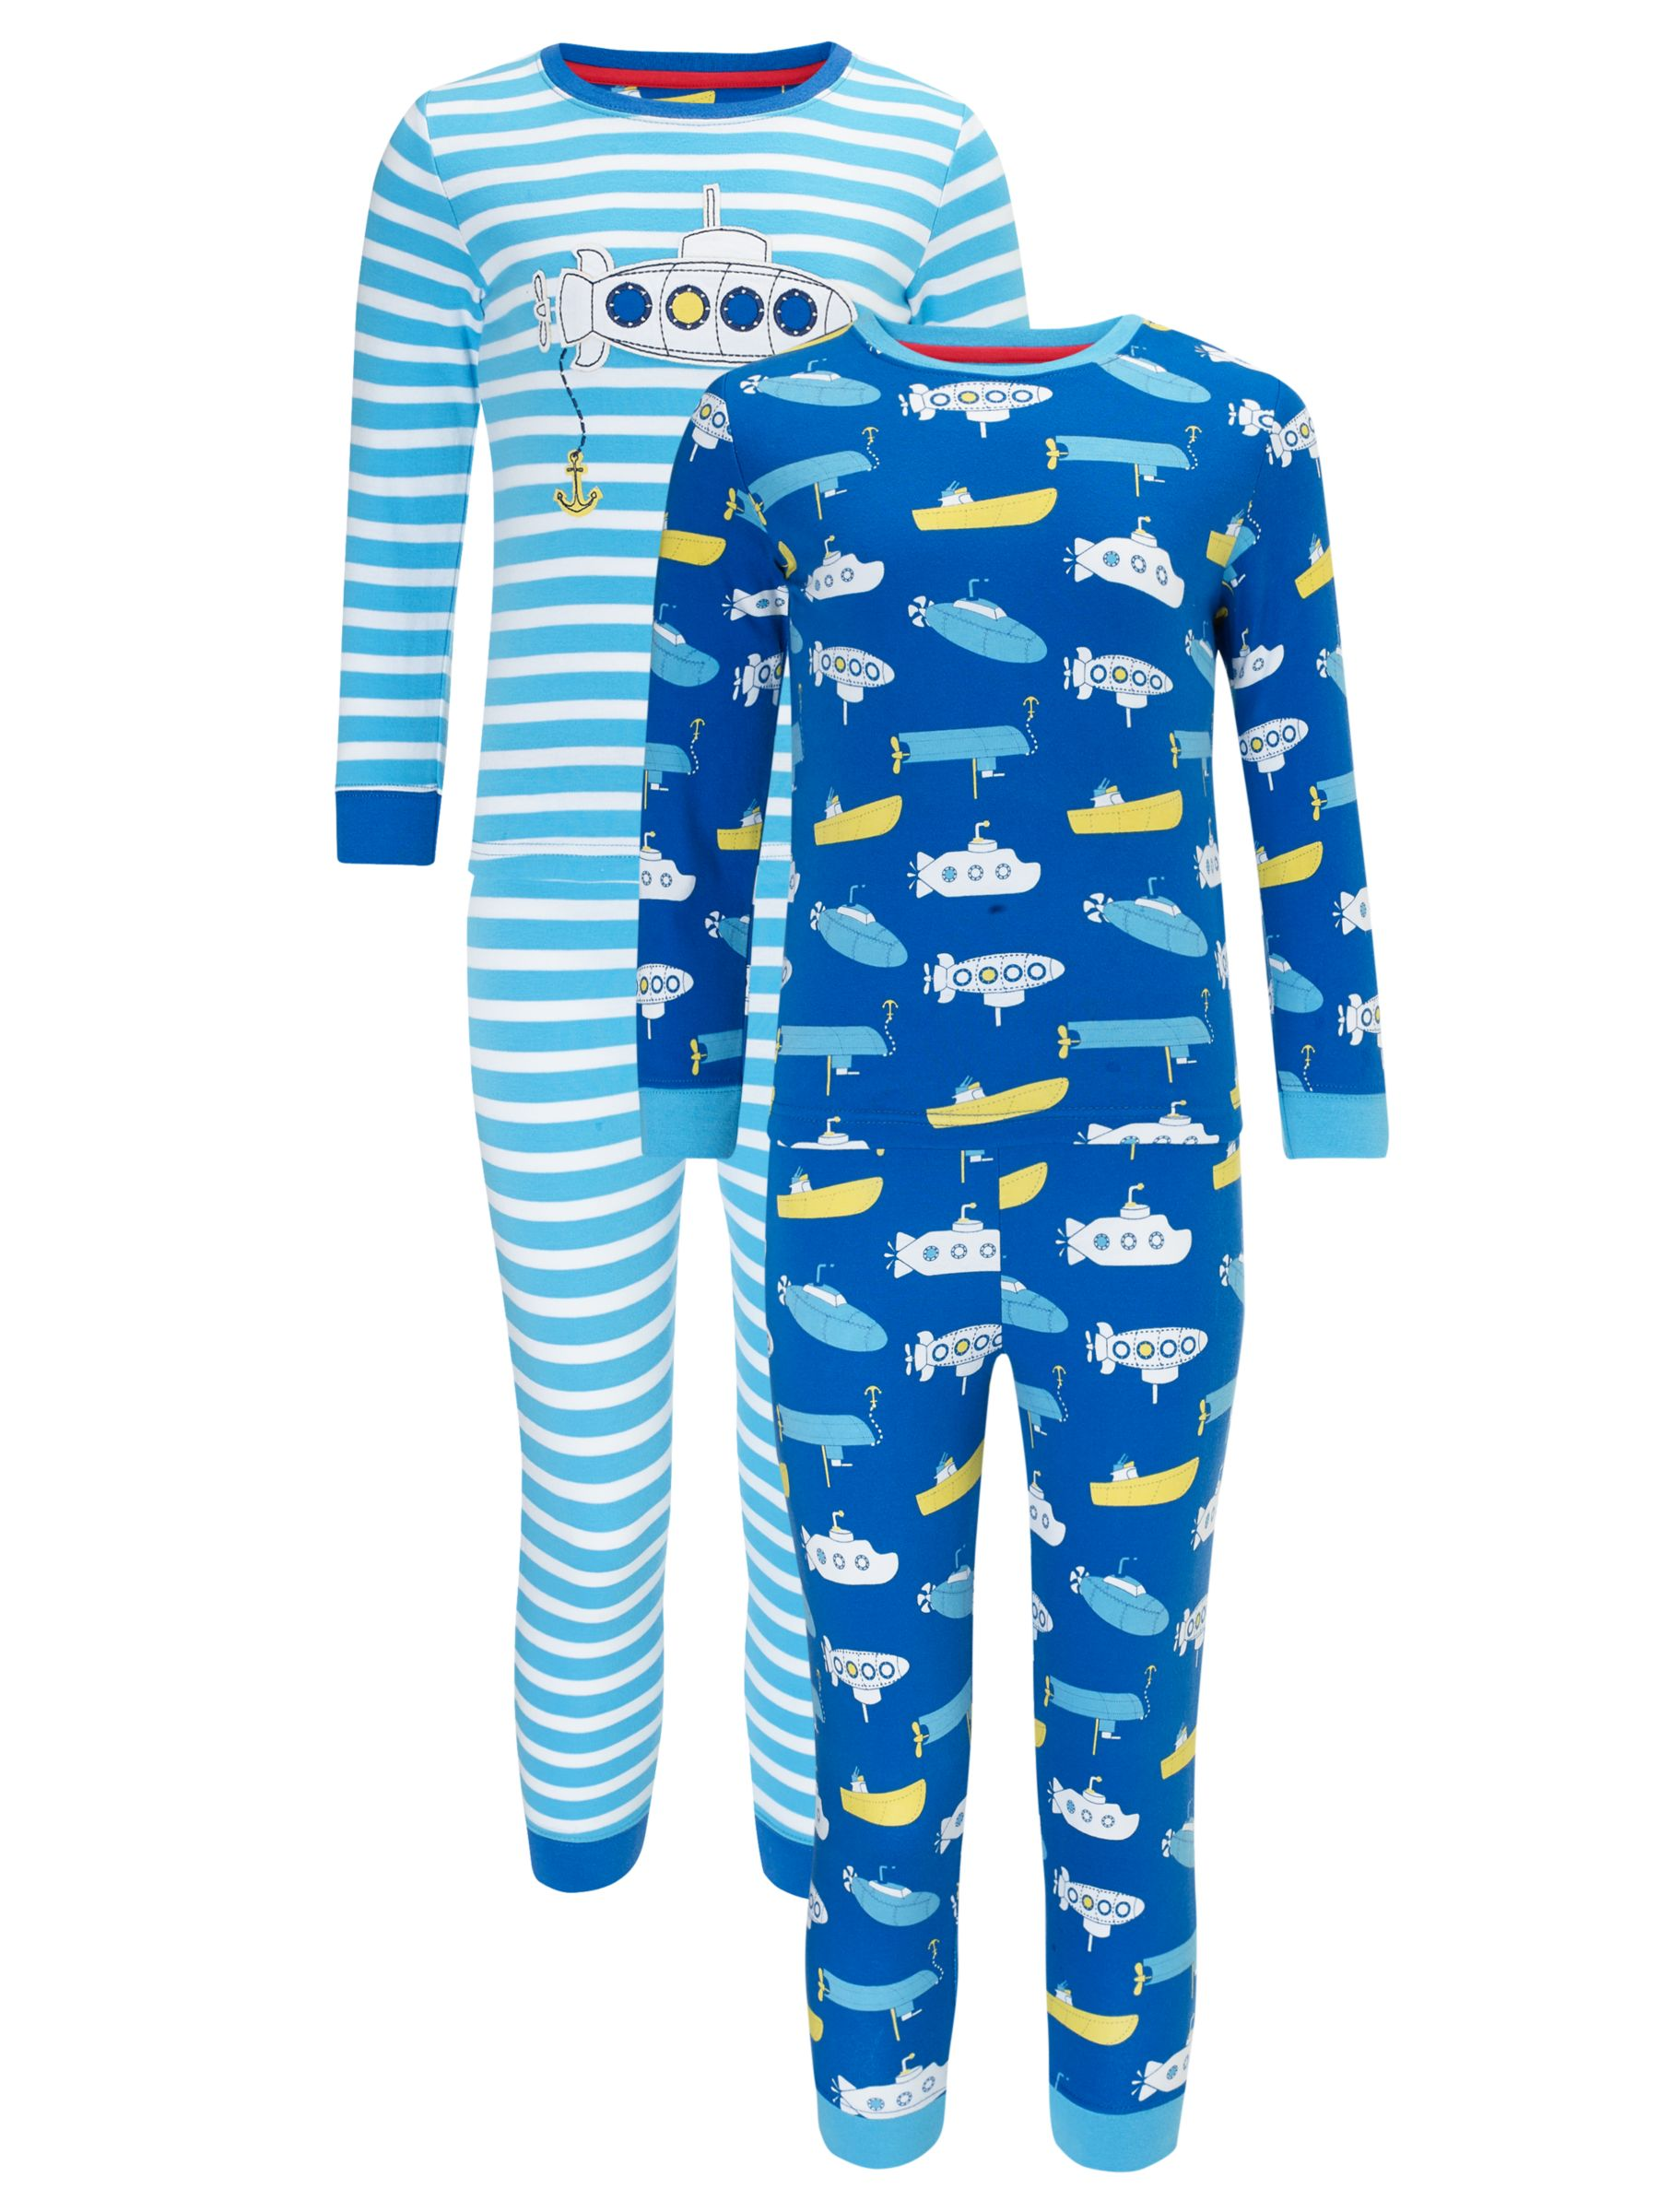 John Lewis Boy Submarine Pyjamas, Pack of 2, Blue/White